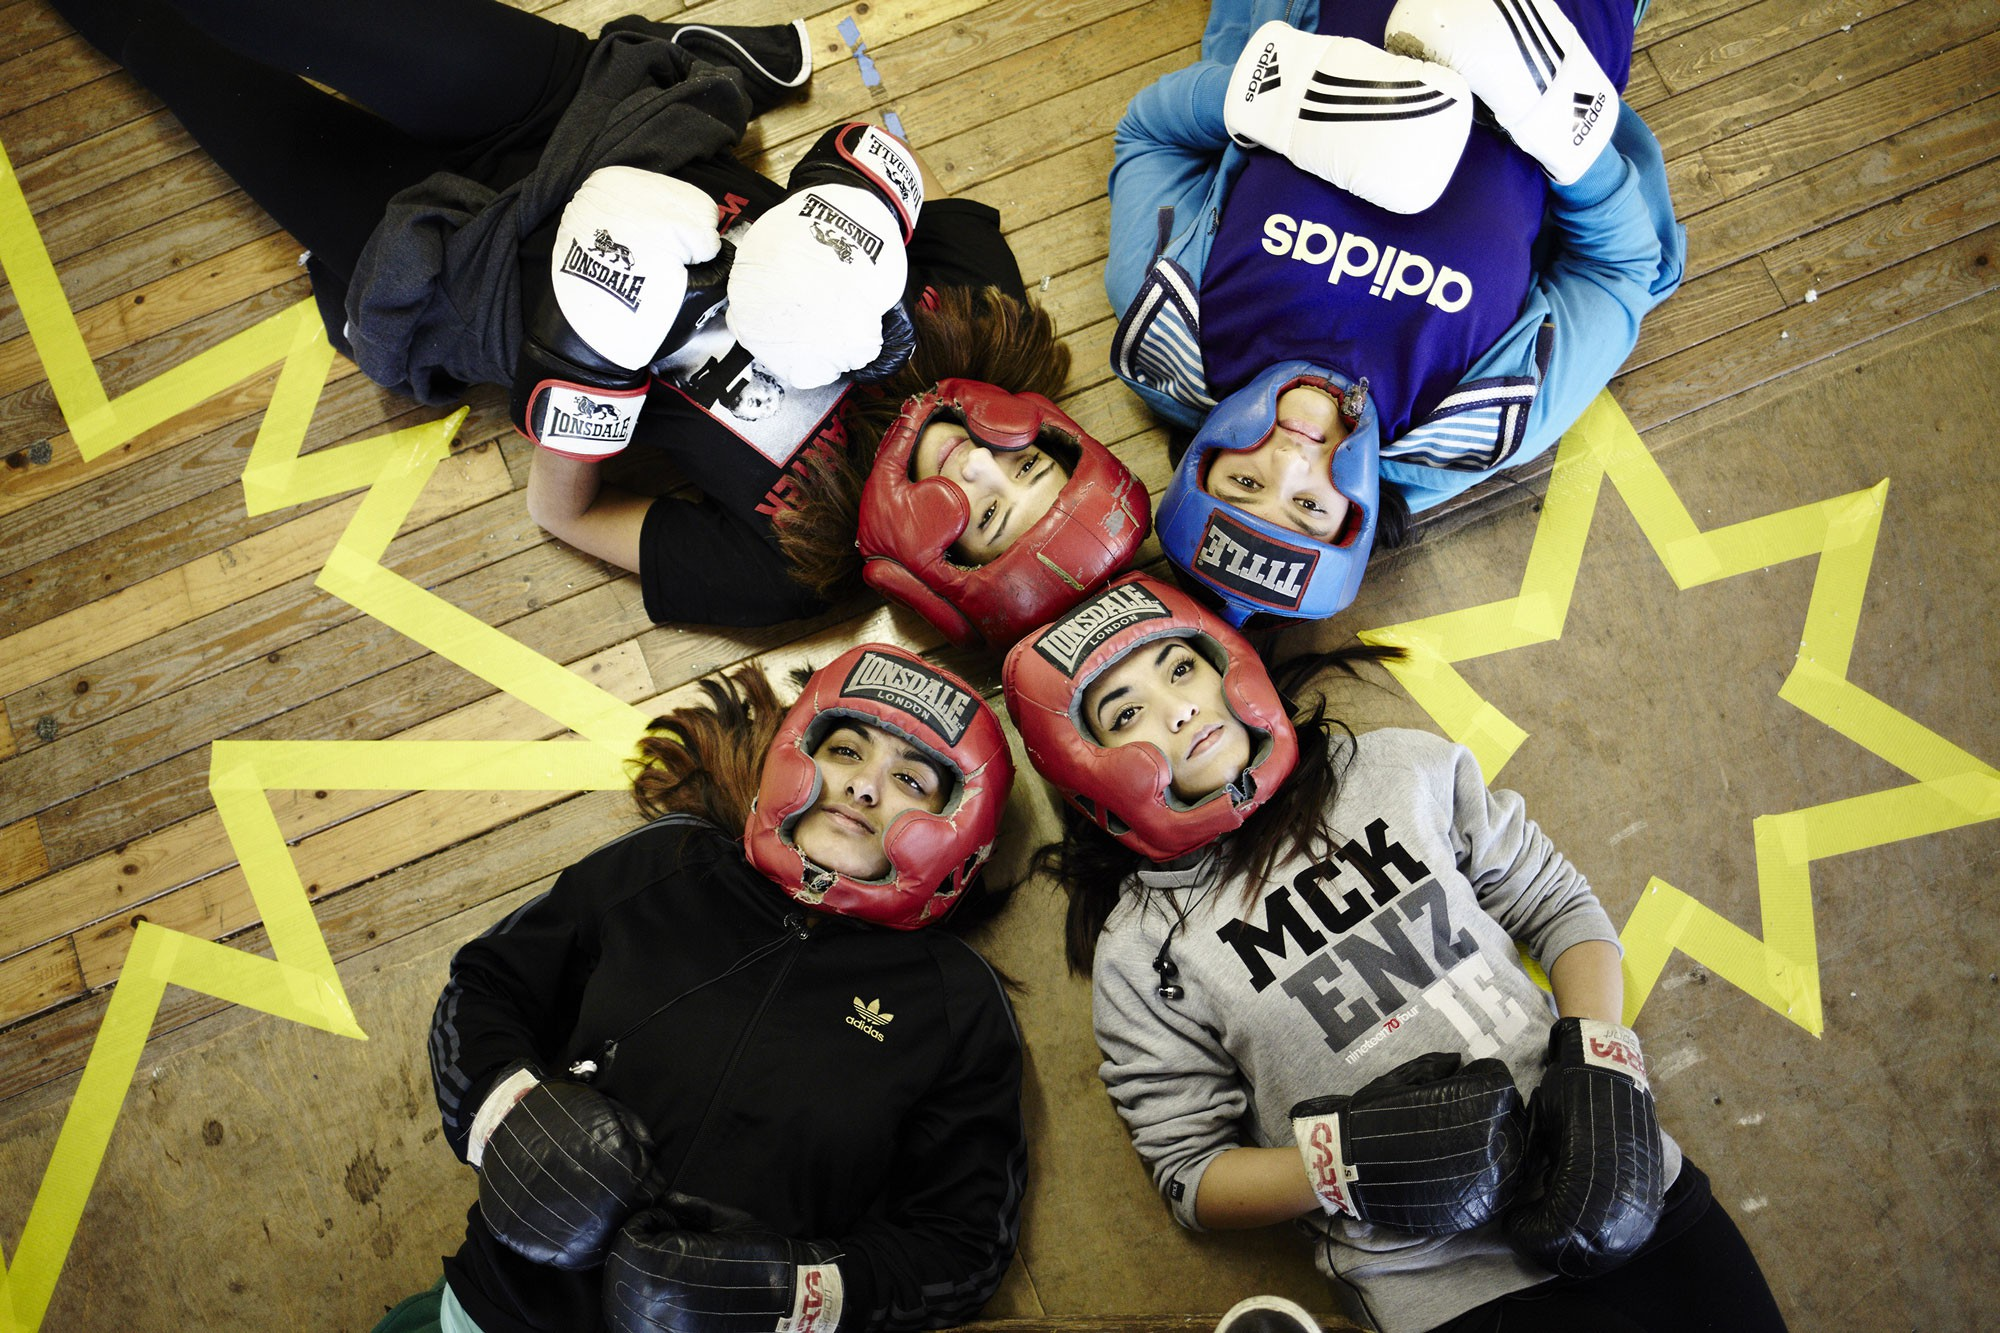 Performers from the site-specific theatre piece No Guts No Heart No Glory, about female muslim boxers, in boxing gear lying on the floor.